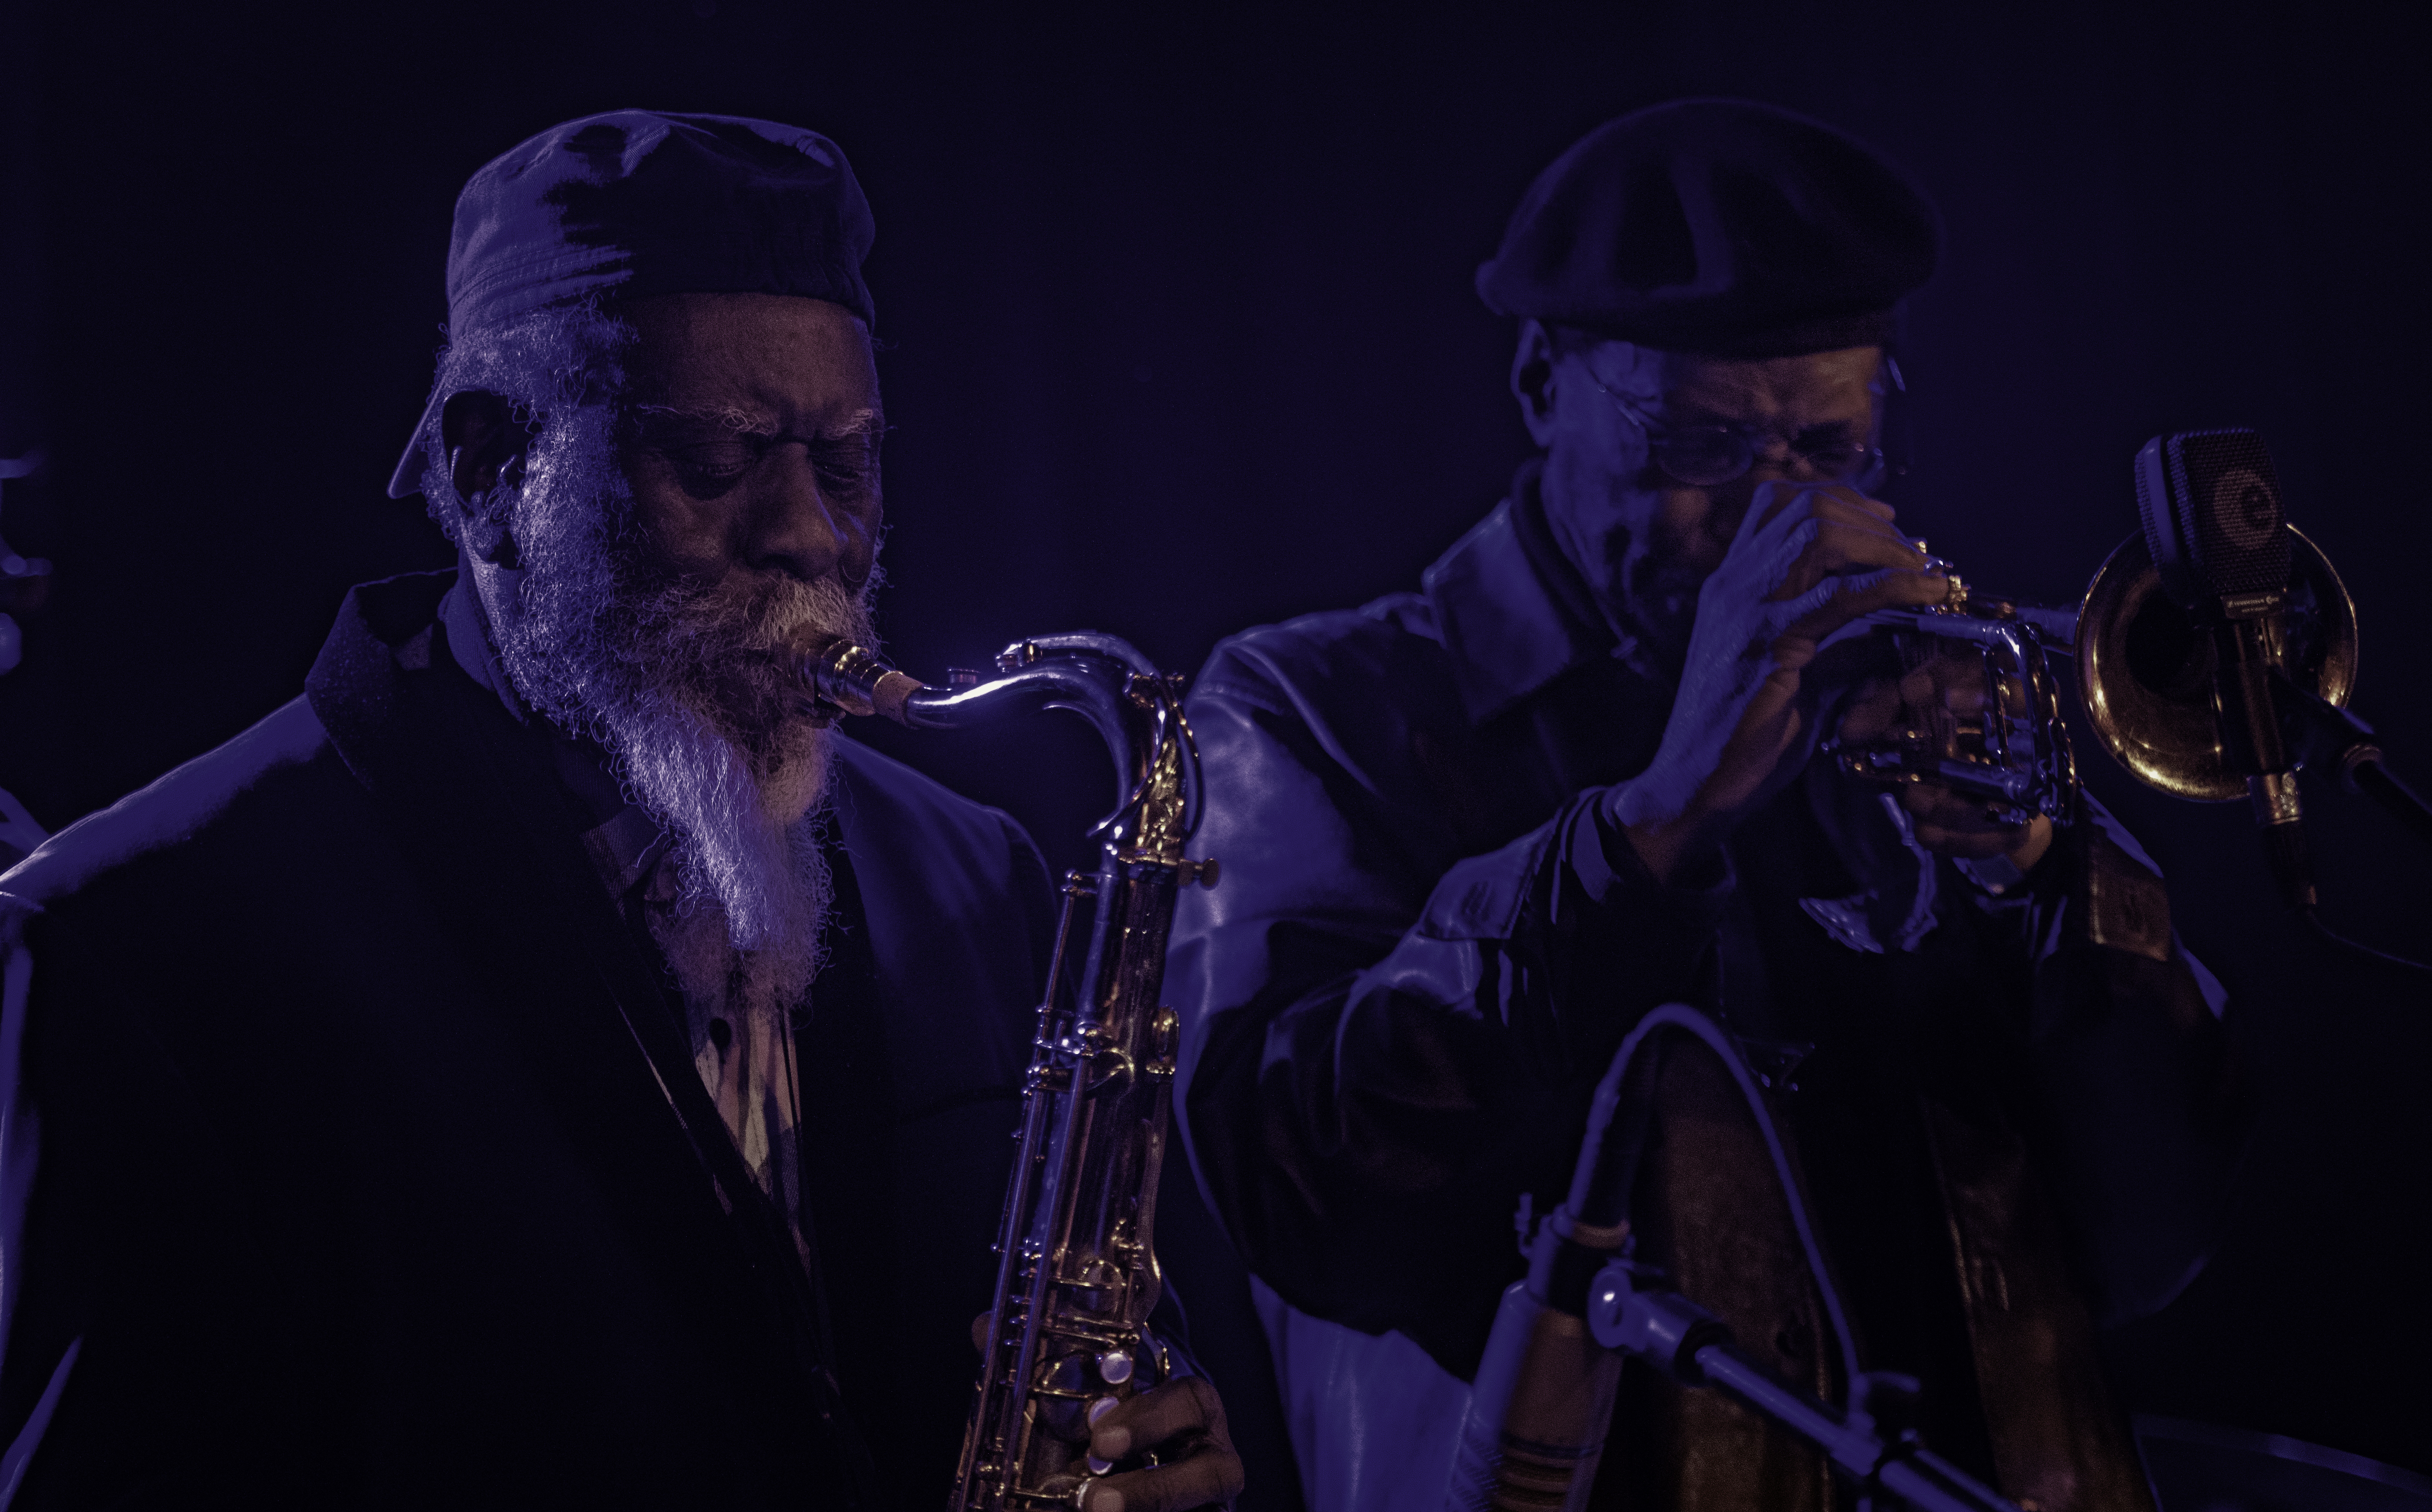 Pharoah Sanders and Charles Tolliver with Gary Bartz Celebrating the 50th Anniversary of 'Another Earth' at the NYC Winter Jazzfest 2019